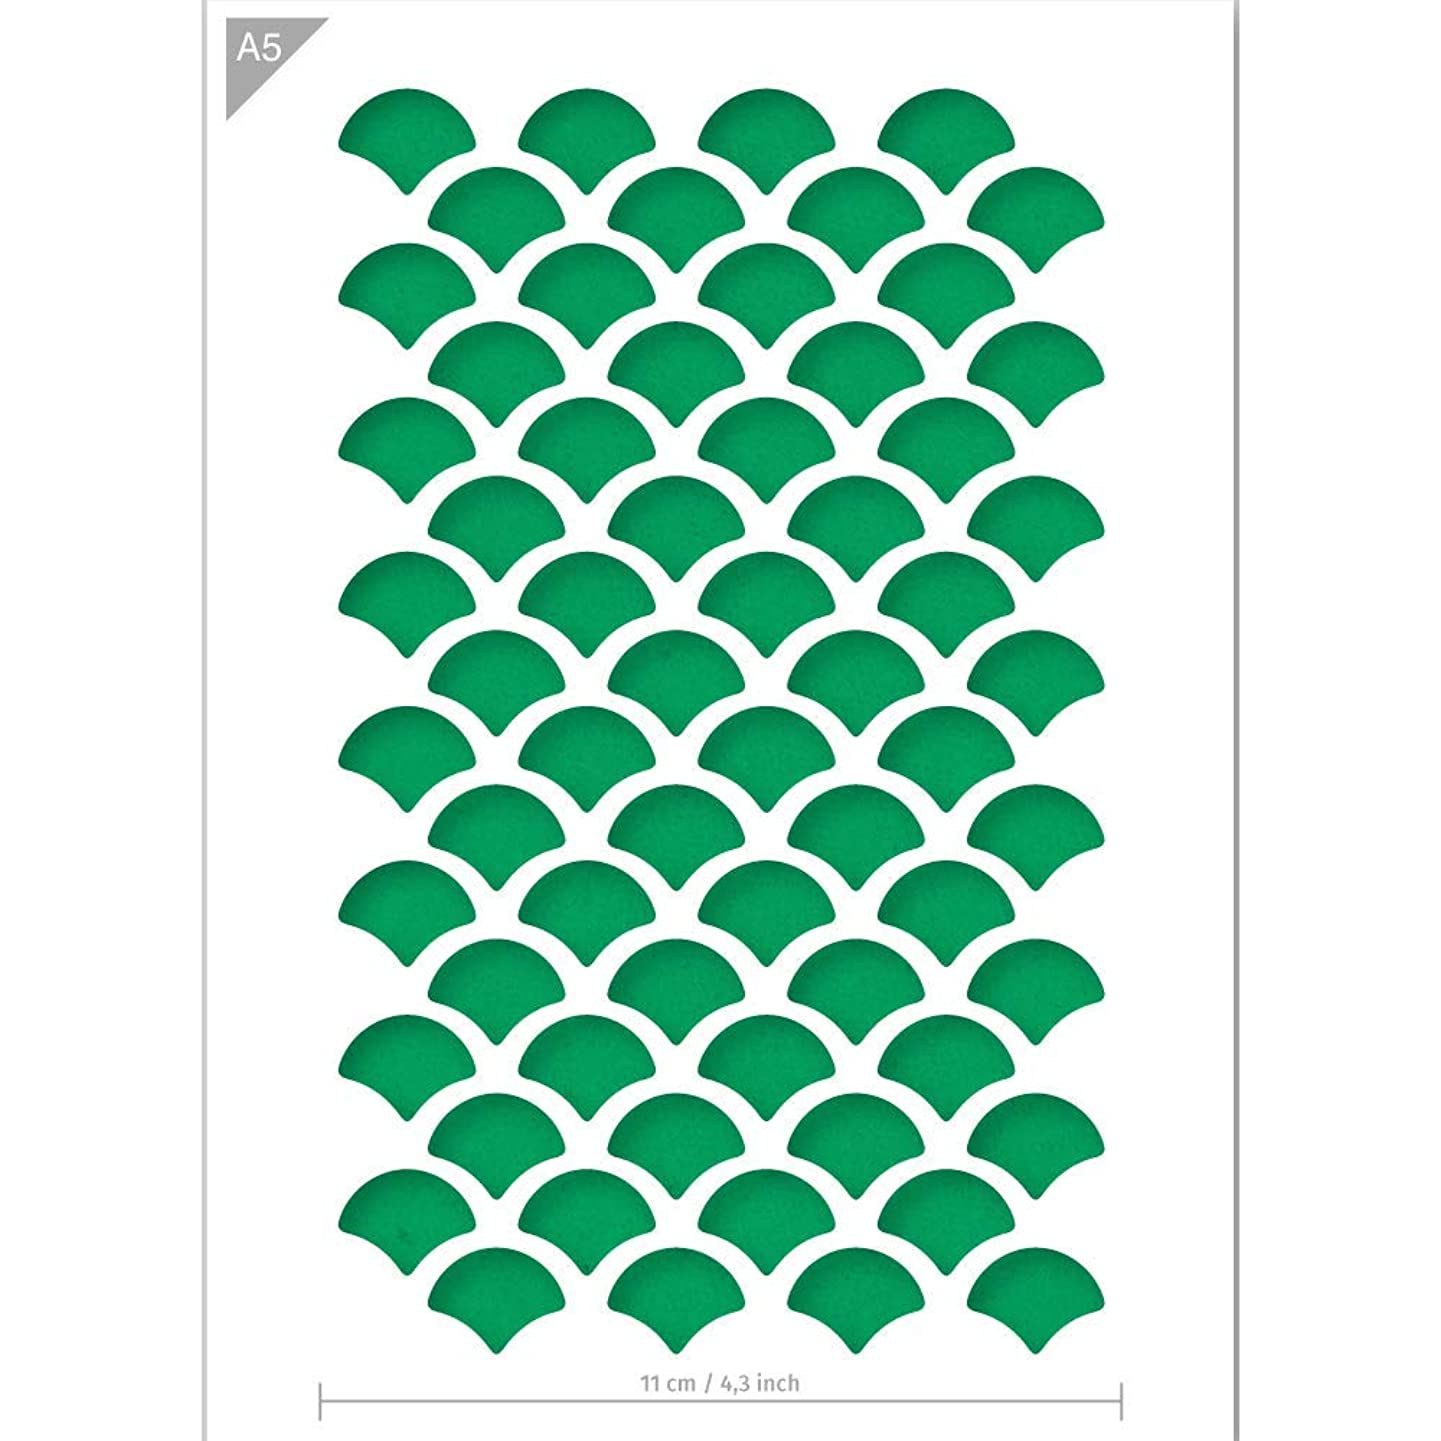 Qbix Scales Stencil - Fish Scales Stencil - Pattern Stencil - A5 Size - Reusable Kids Friendly DIY Stencil for Painting, Baking, Crafts, Wall, Furniture